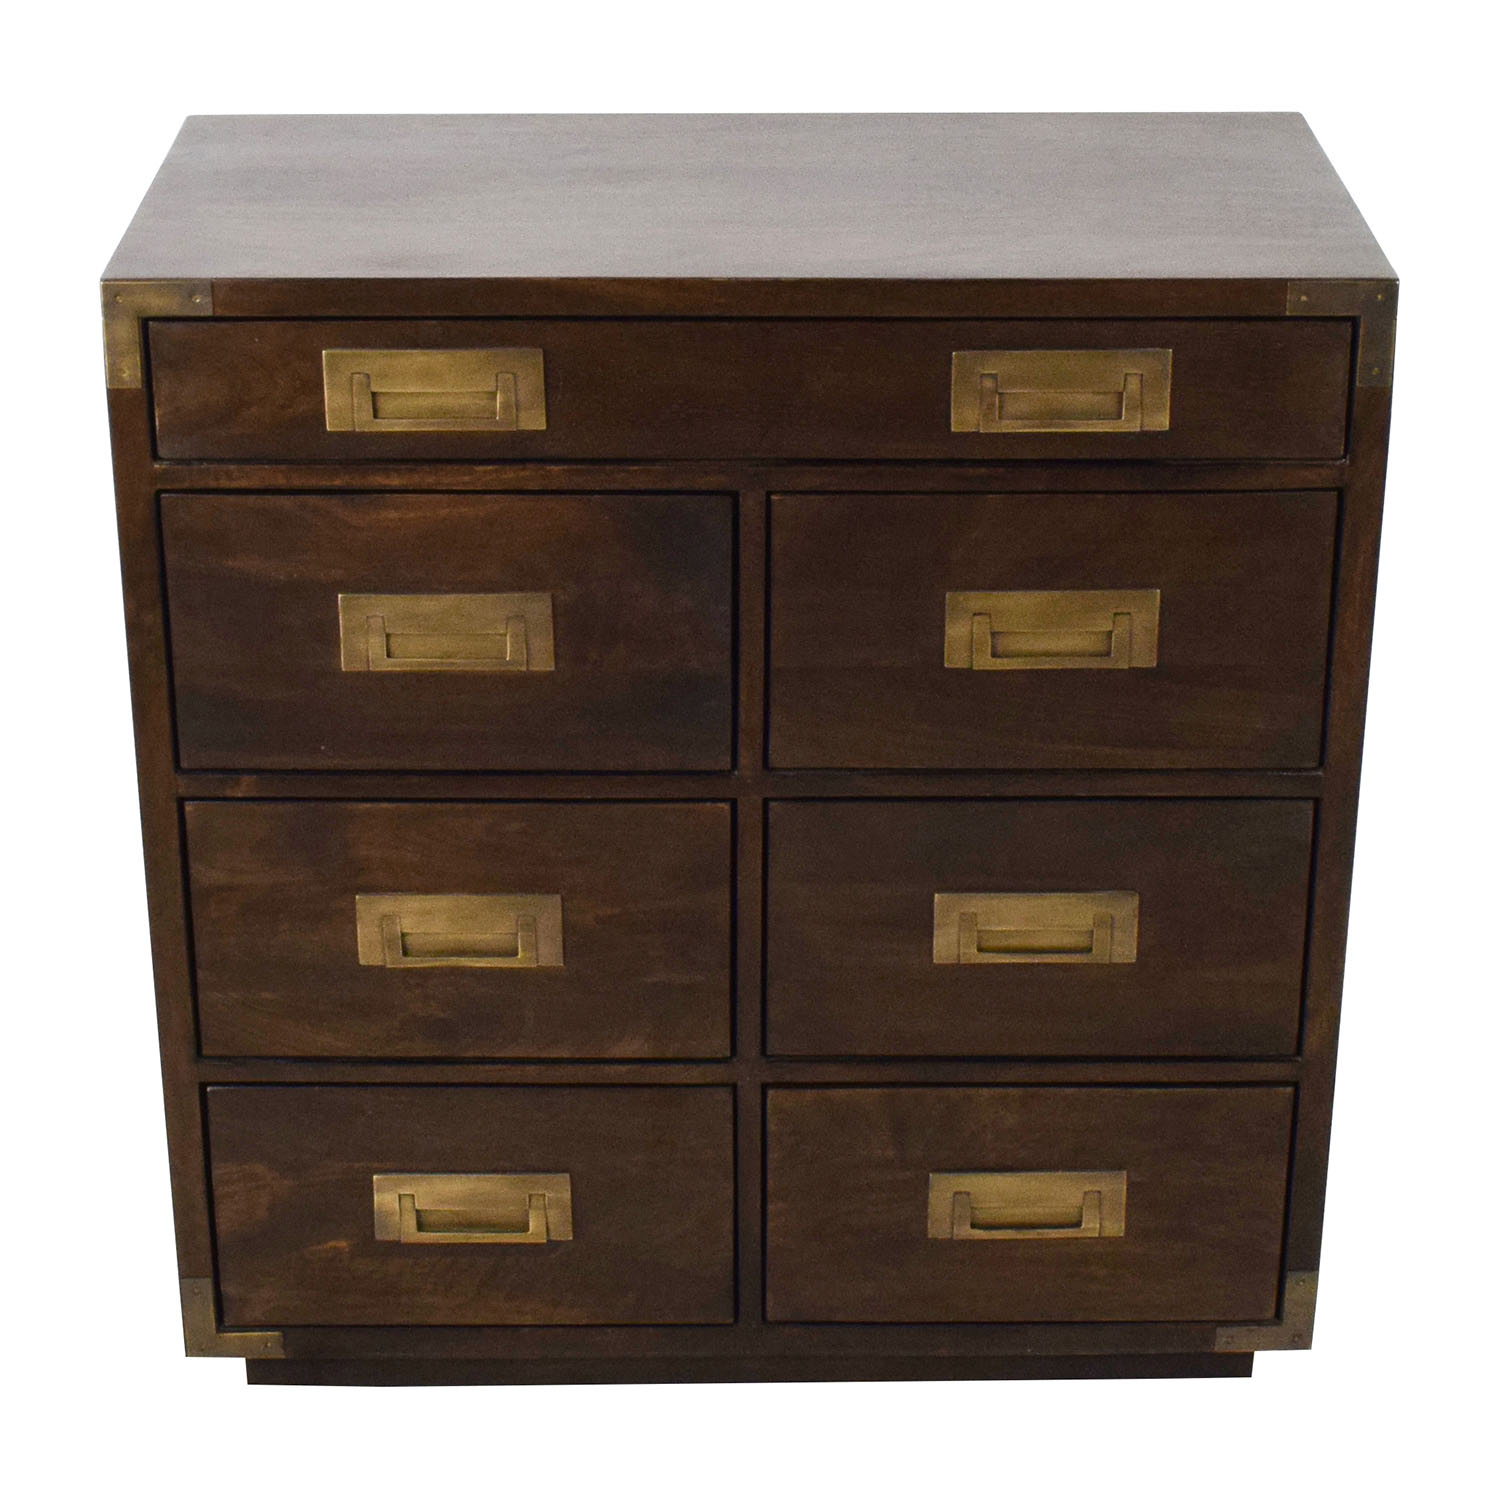 43 Off Crate And Barrel Crate Barrel 7 Drawer Bedroom